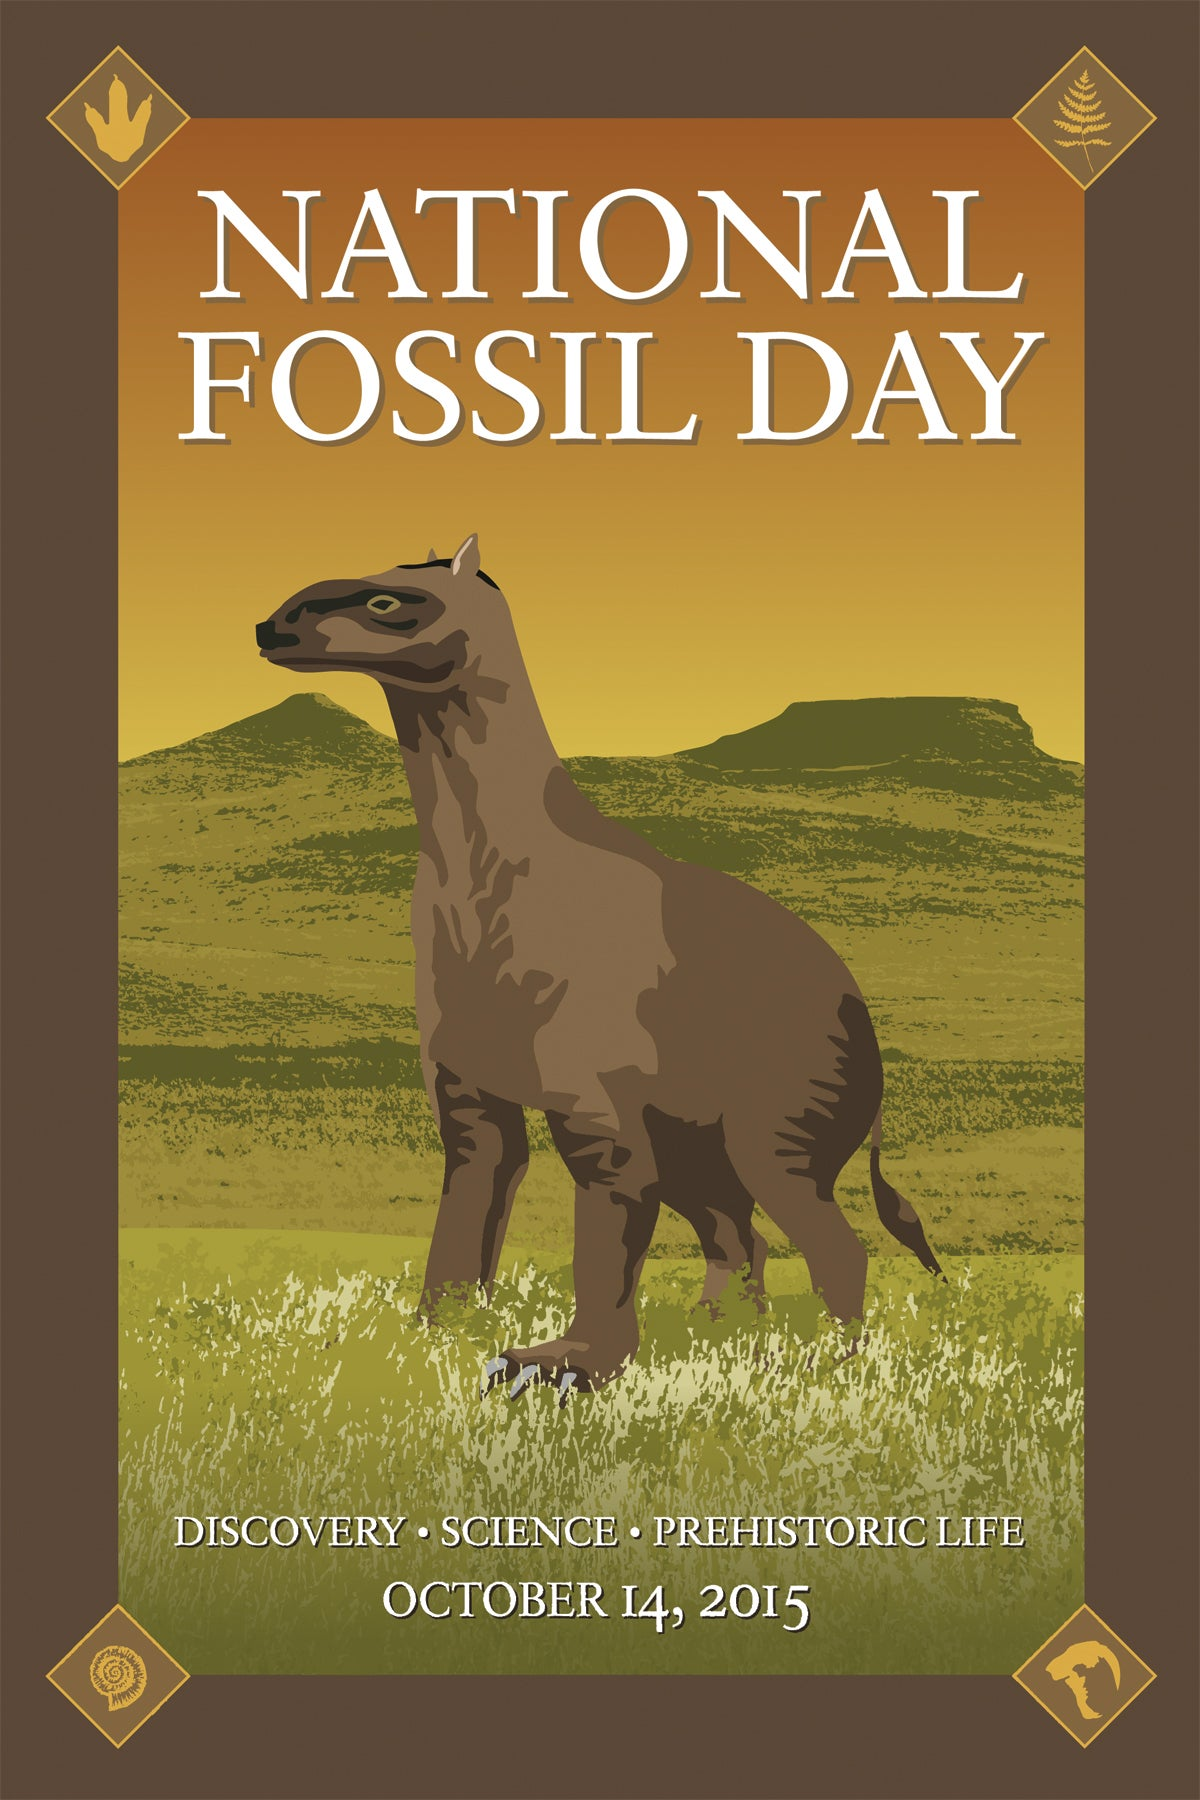 In Honor Of Fossil Day, Here Are 7 Of The Year's Best Fossil Discoveries